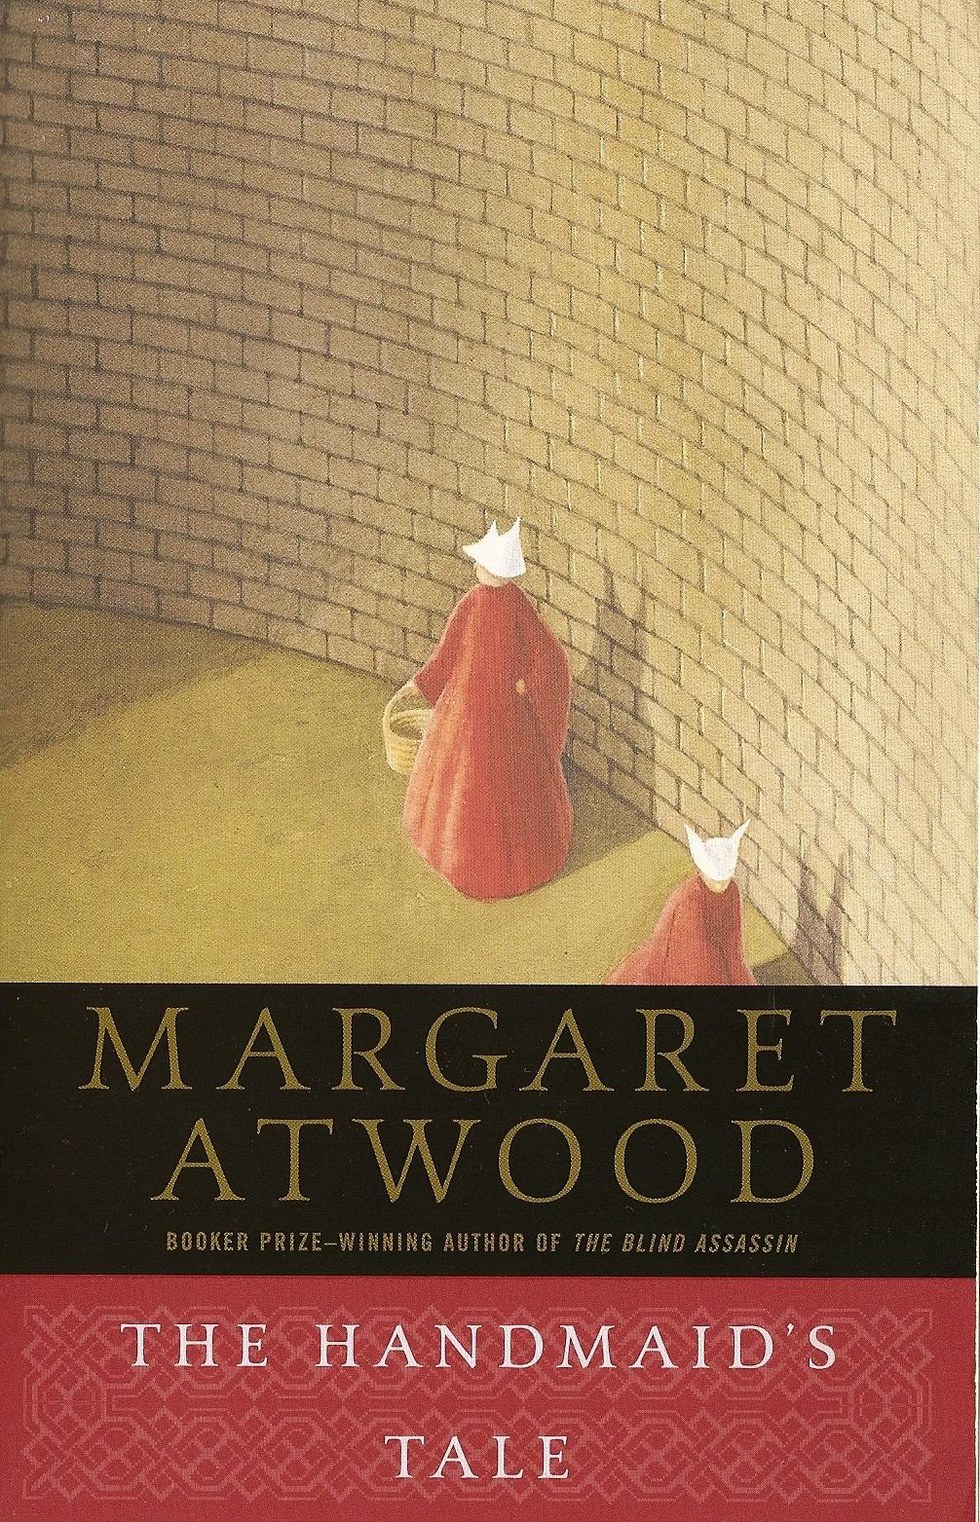 a literary analysis of a handmaids tale by margaret atwood By margaret atwood close the english national opera production of the handmaid's tale (once you've been intrigued by a literary form.